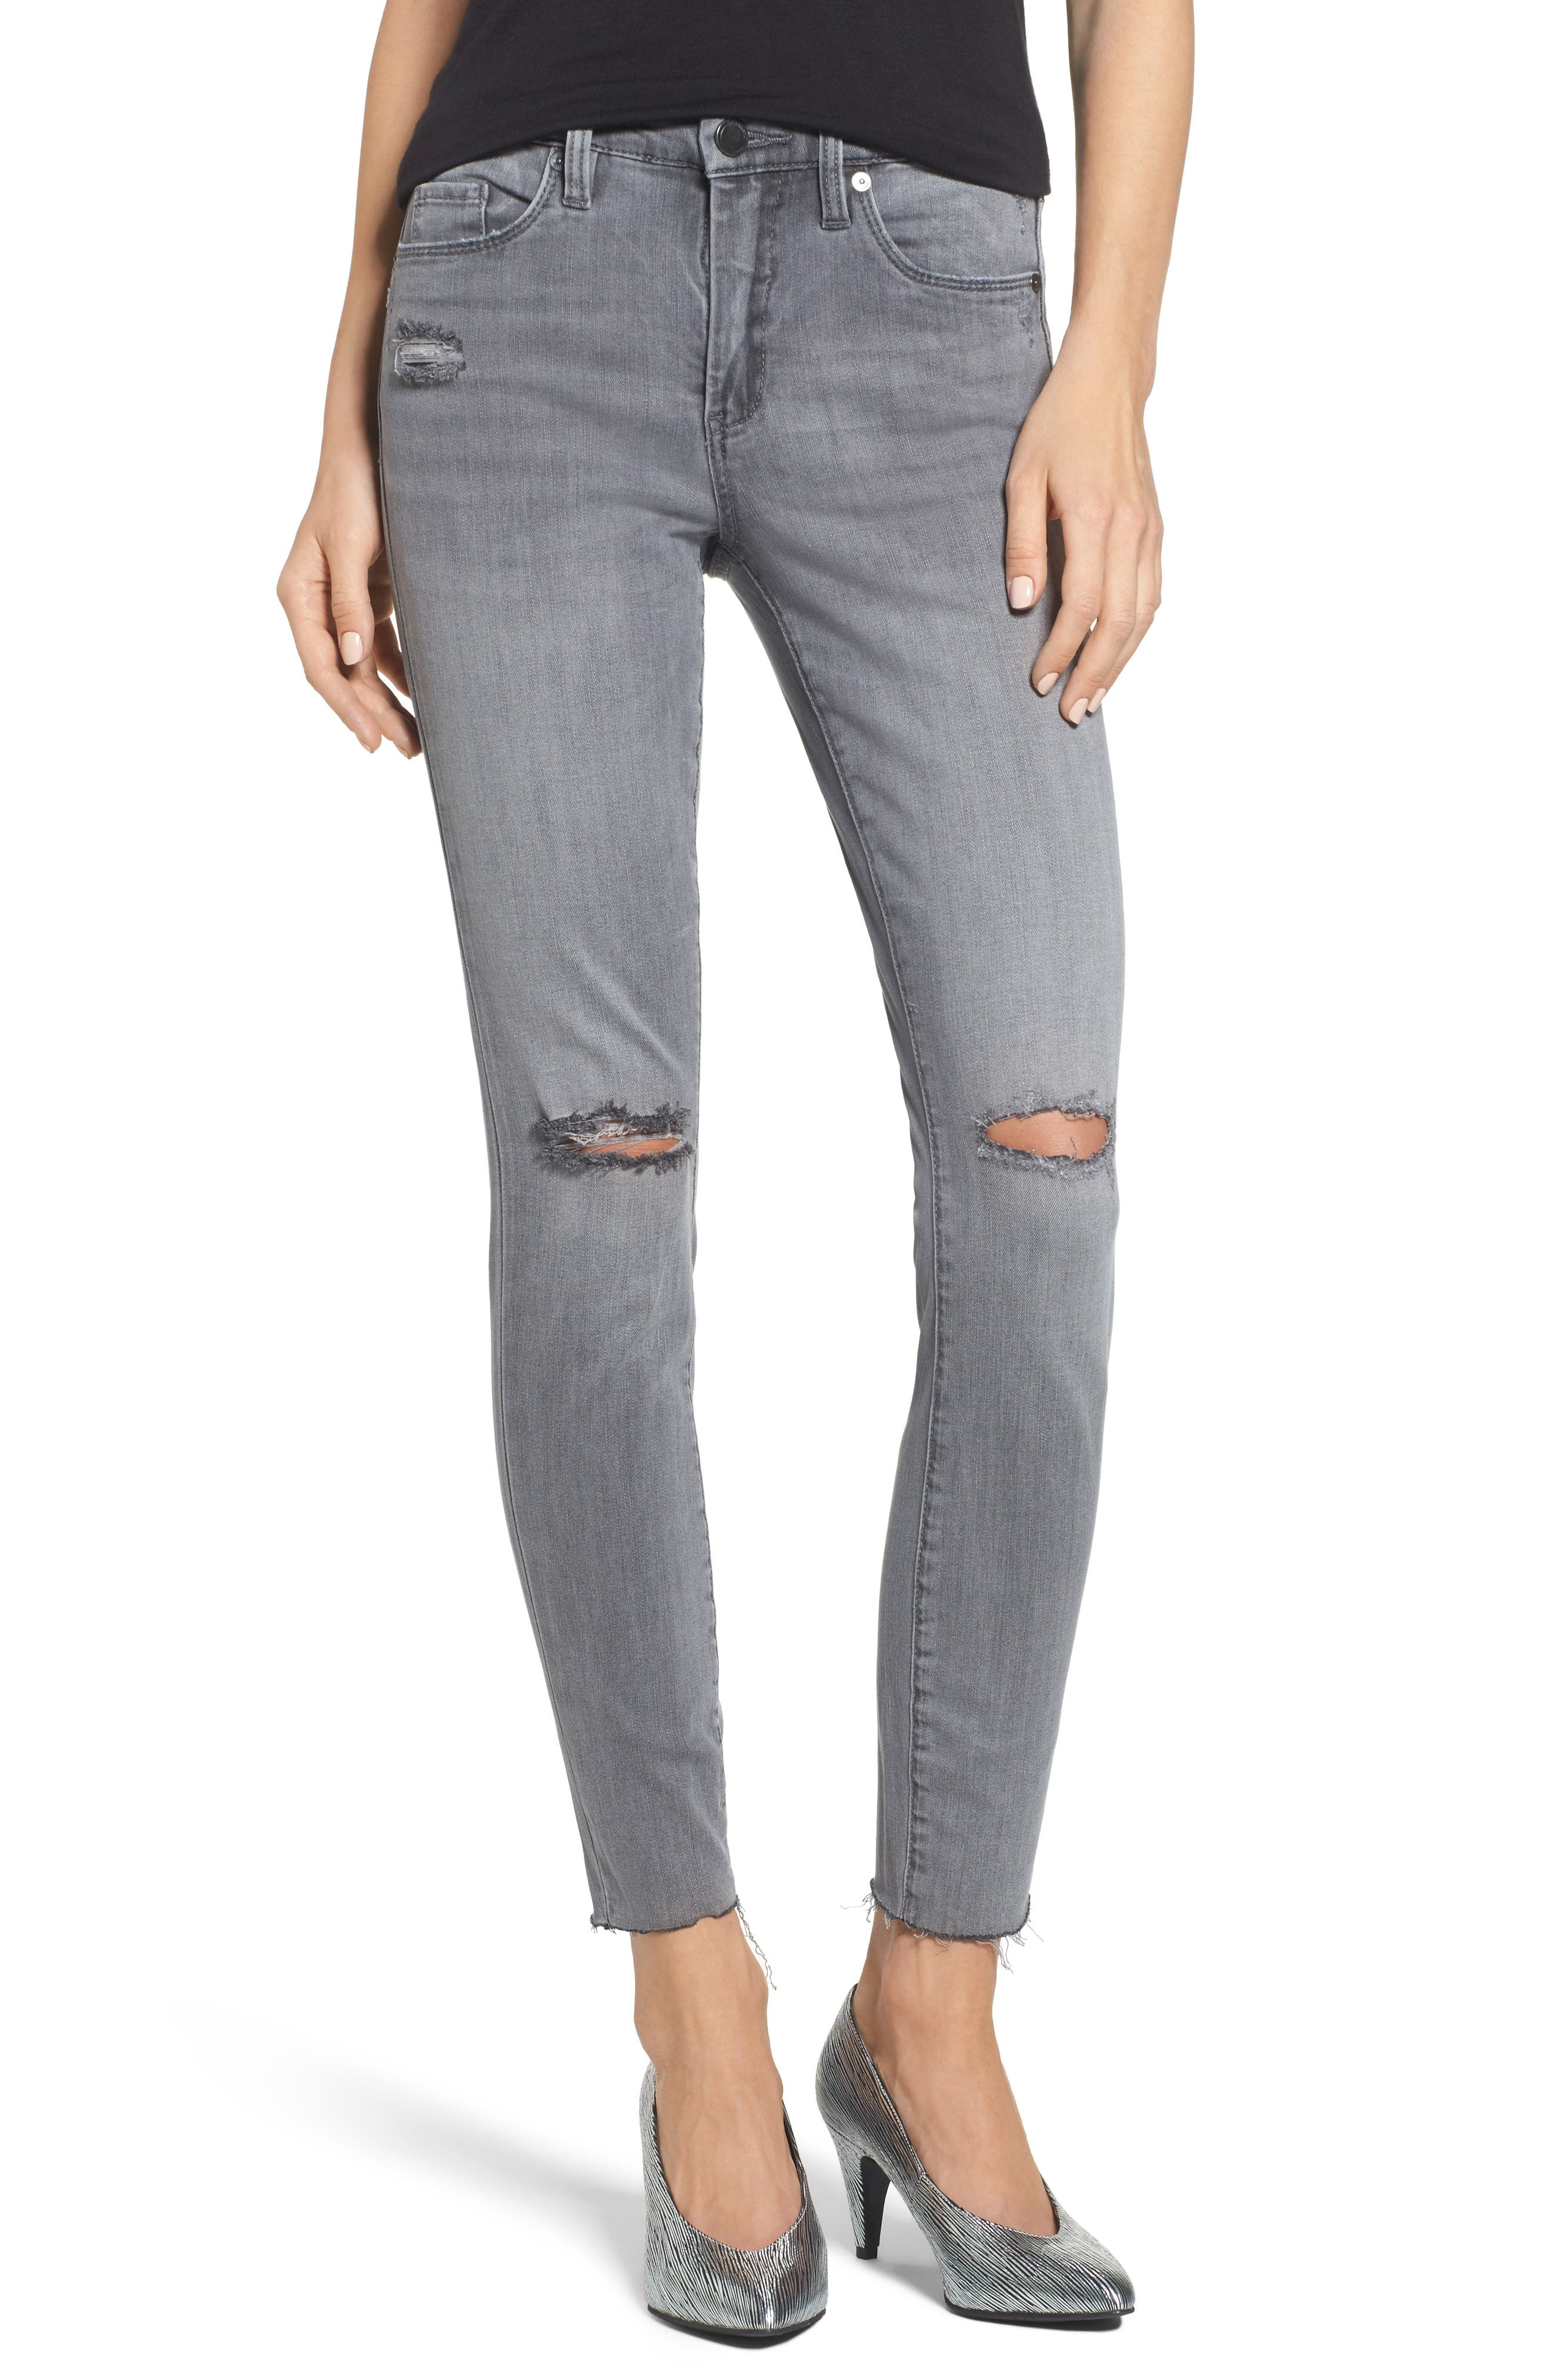 Tequila Royale Skinny Jeans,                         Main,                         color,